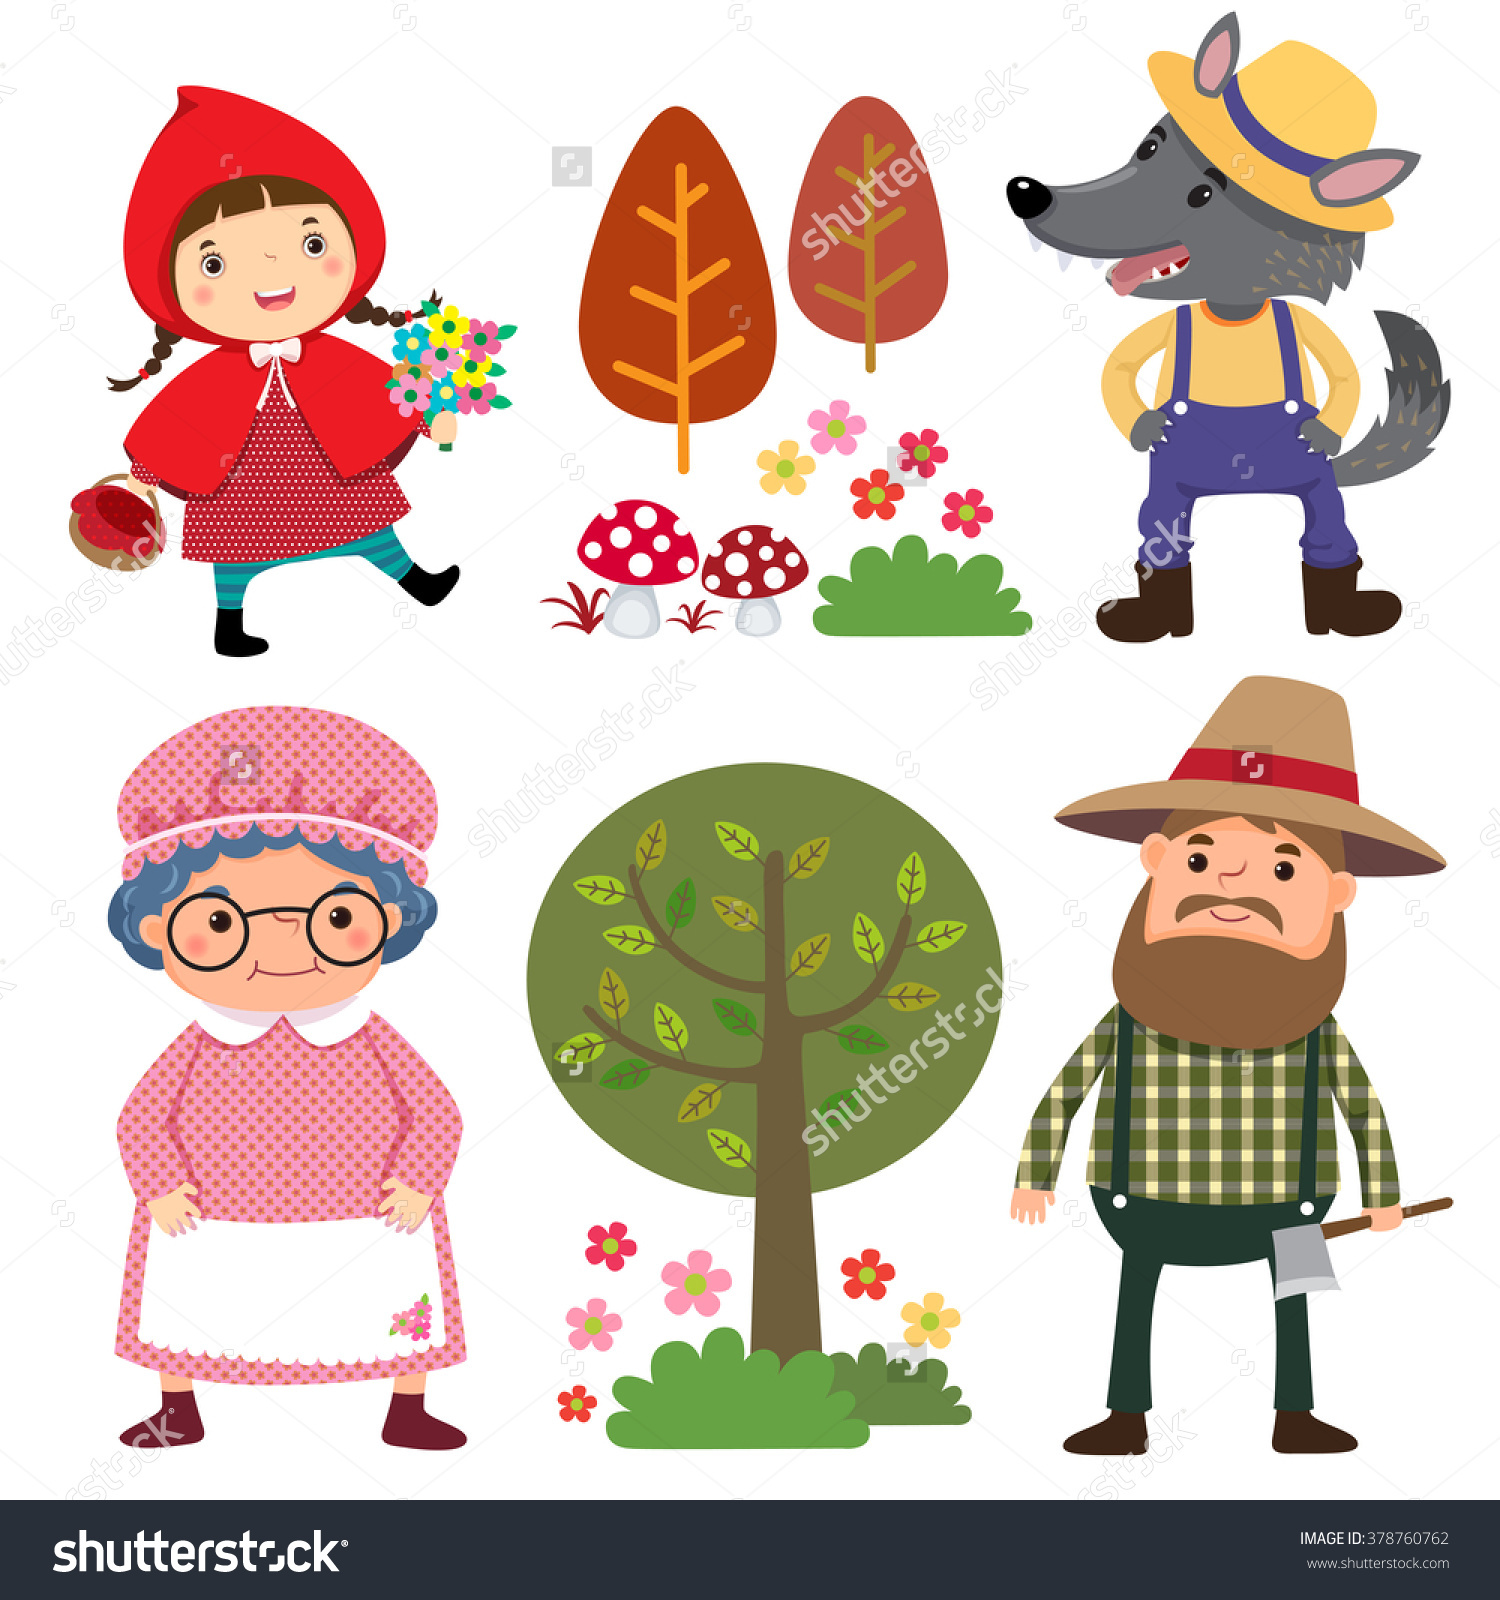 Little red riding hood character clipart.